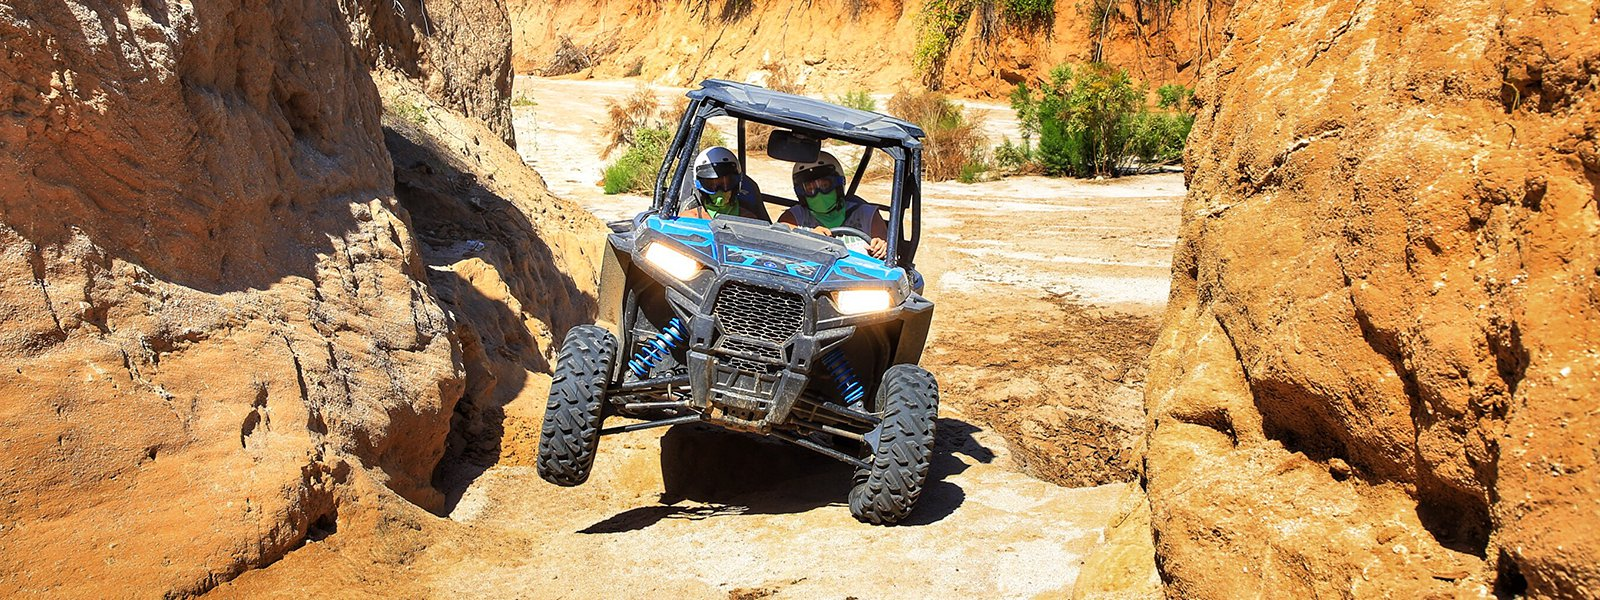 off-road-adventure-cabo-adventures-7.jpg